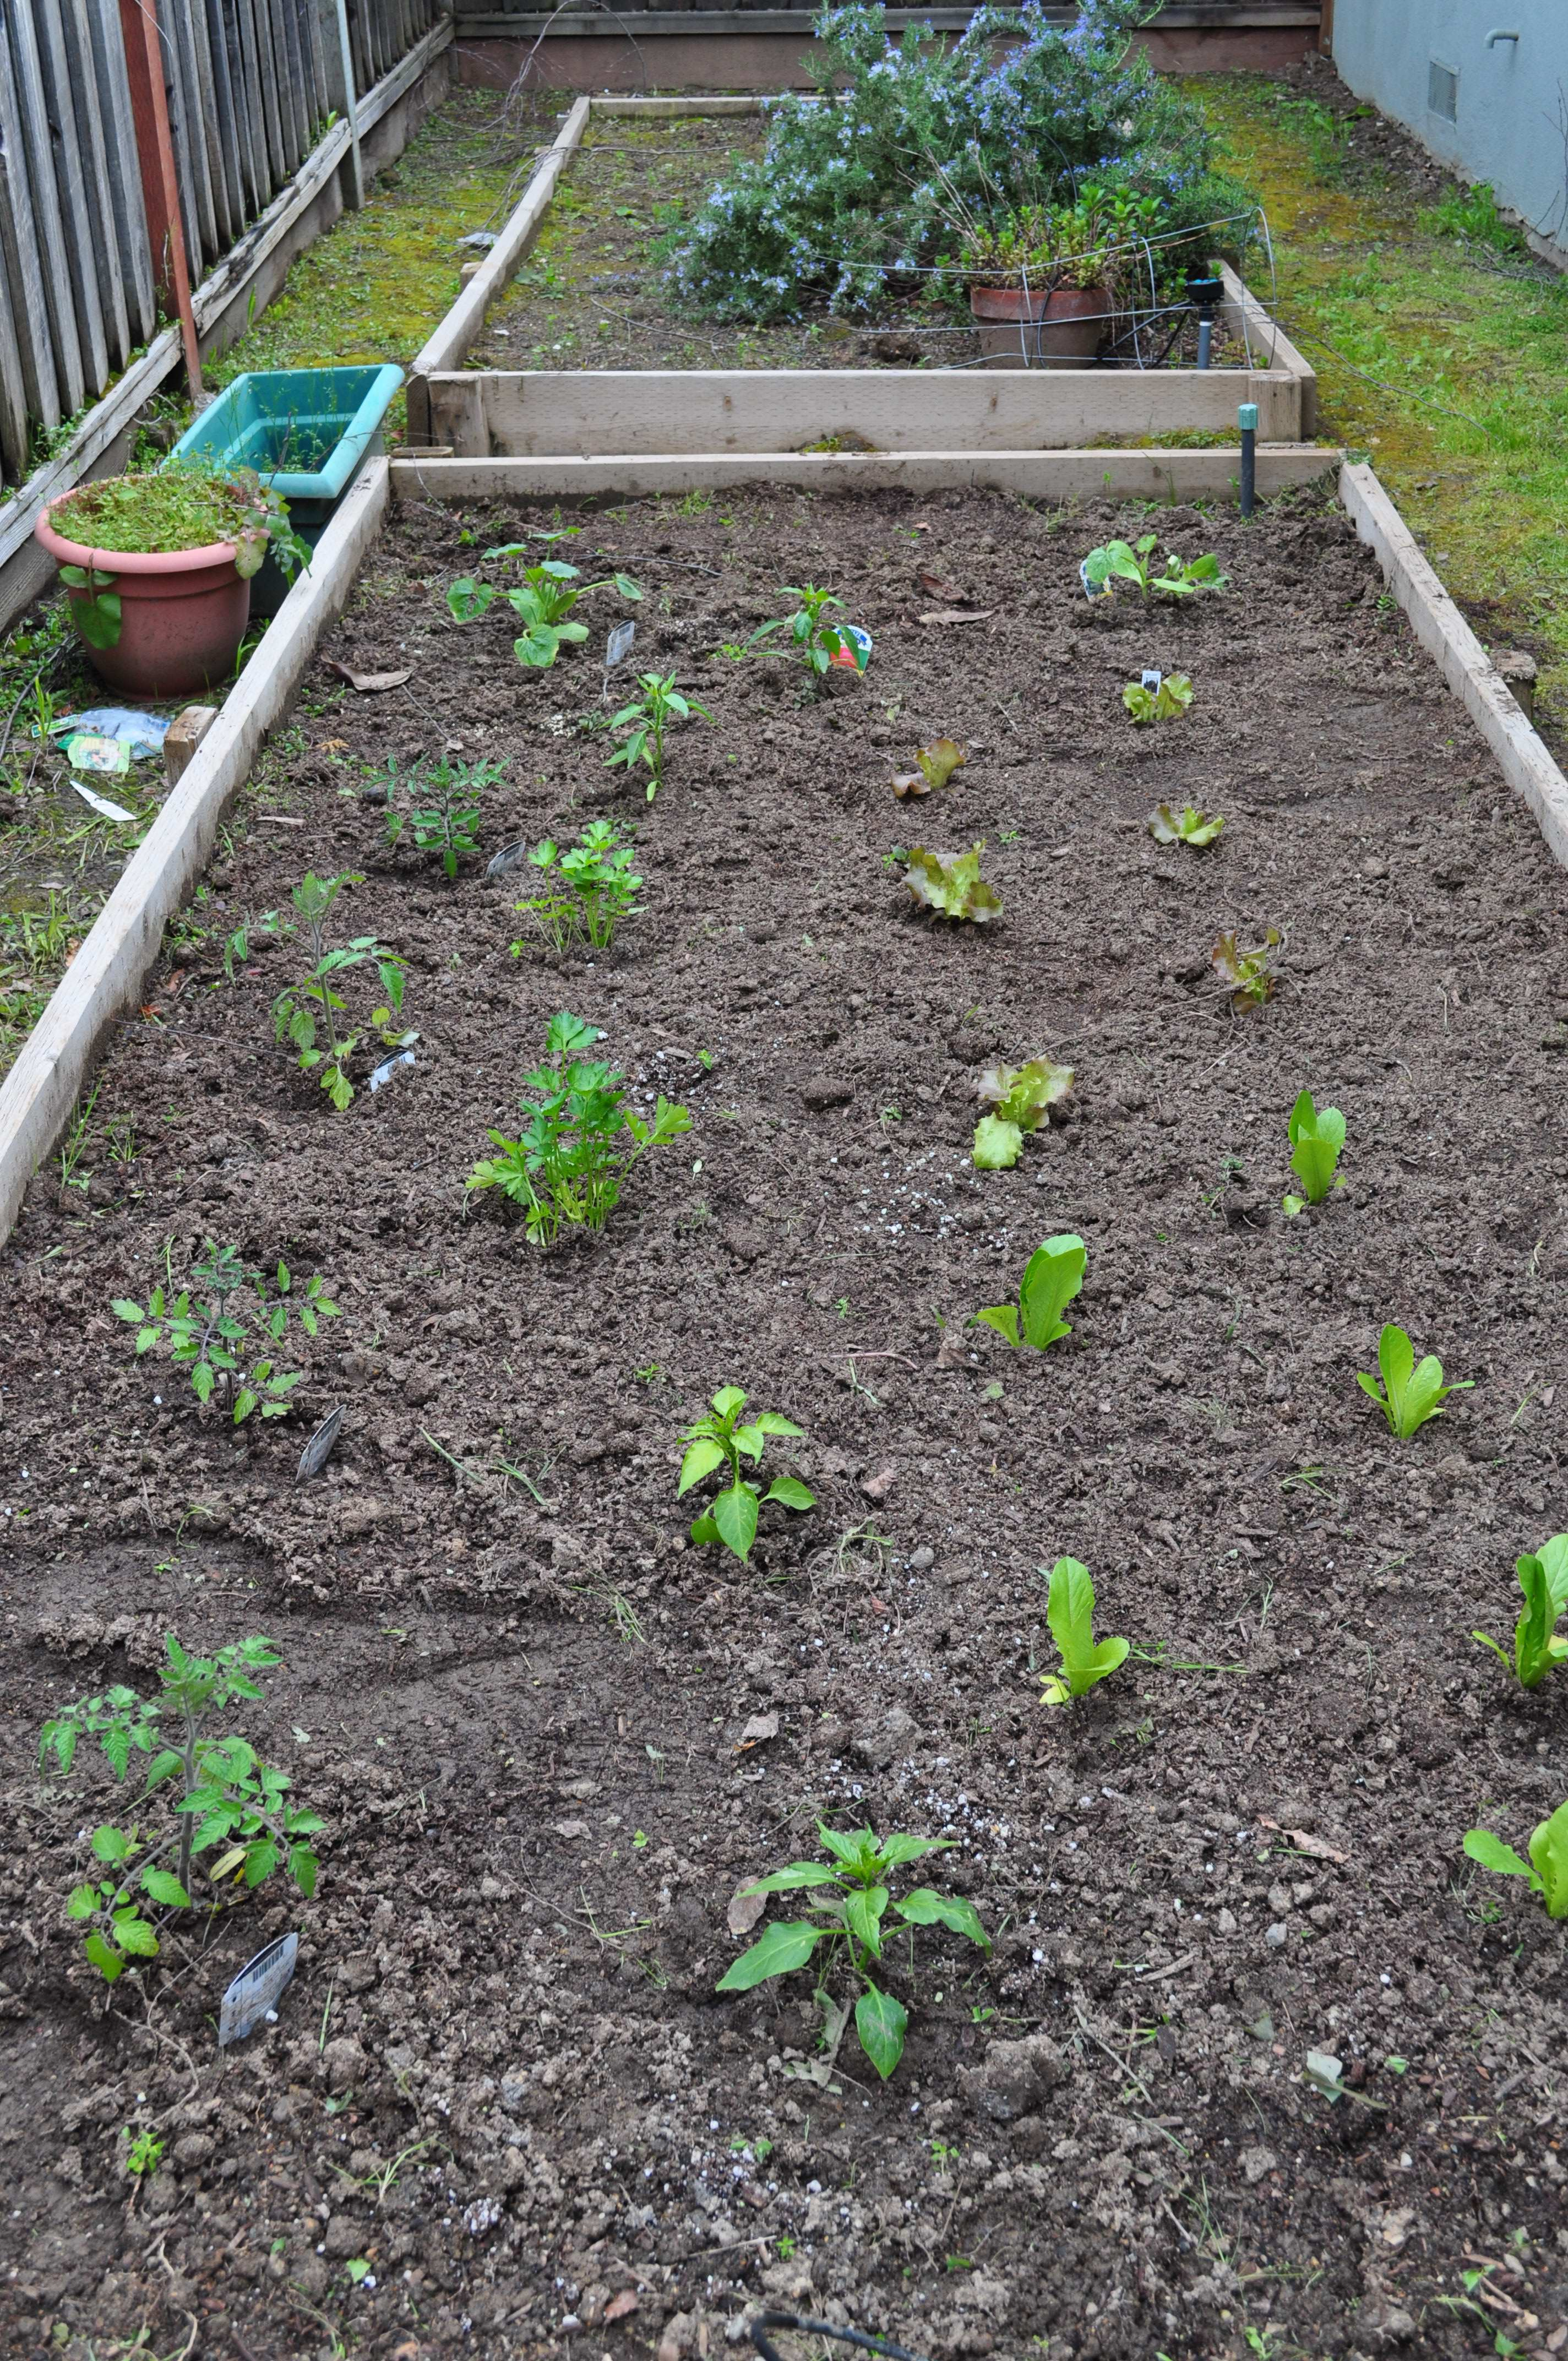 Tomatoes, parsely, lettuce, peppers, perilla leaves and zucchini